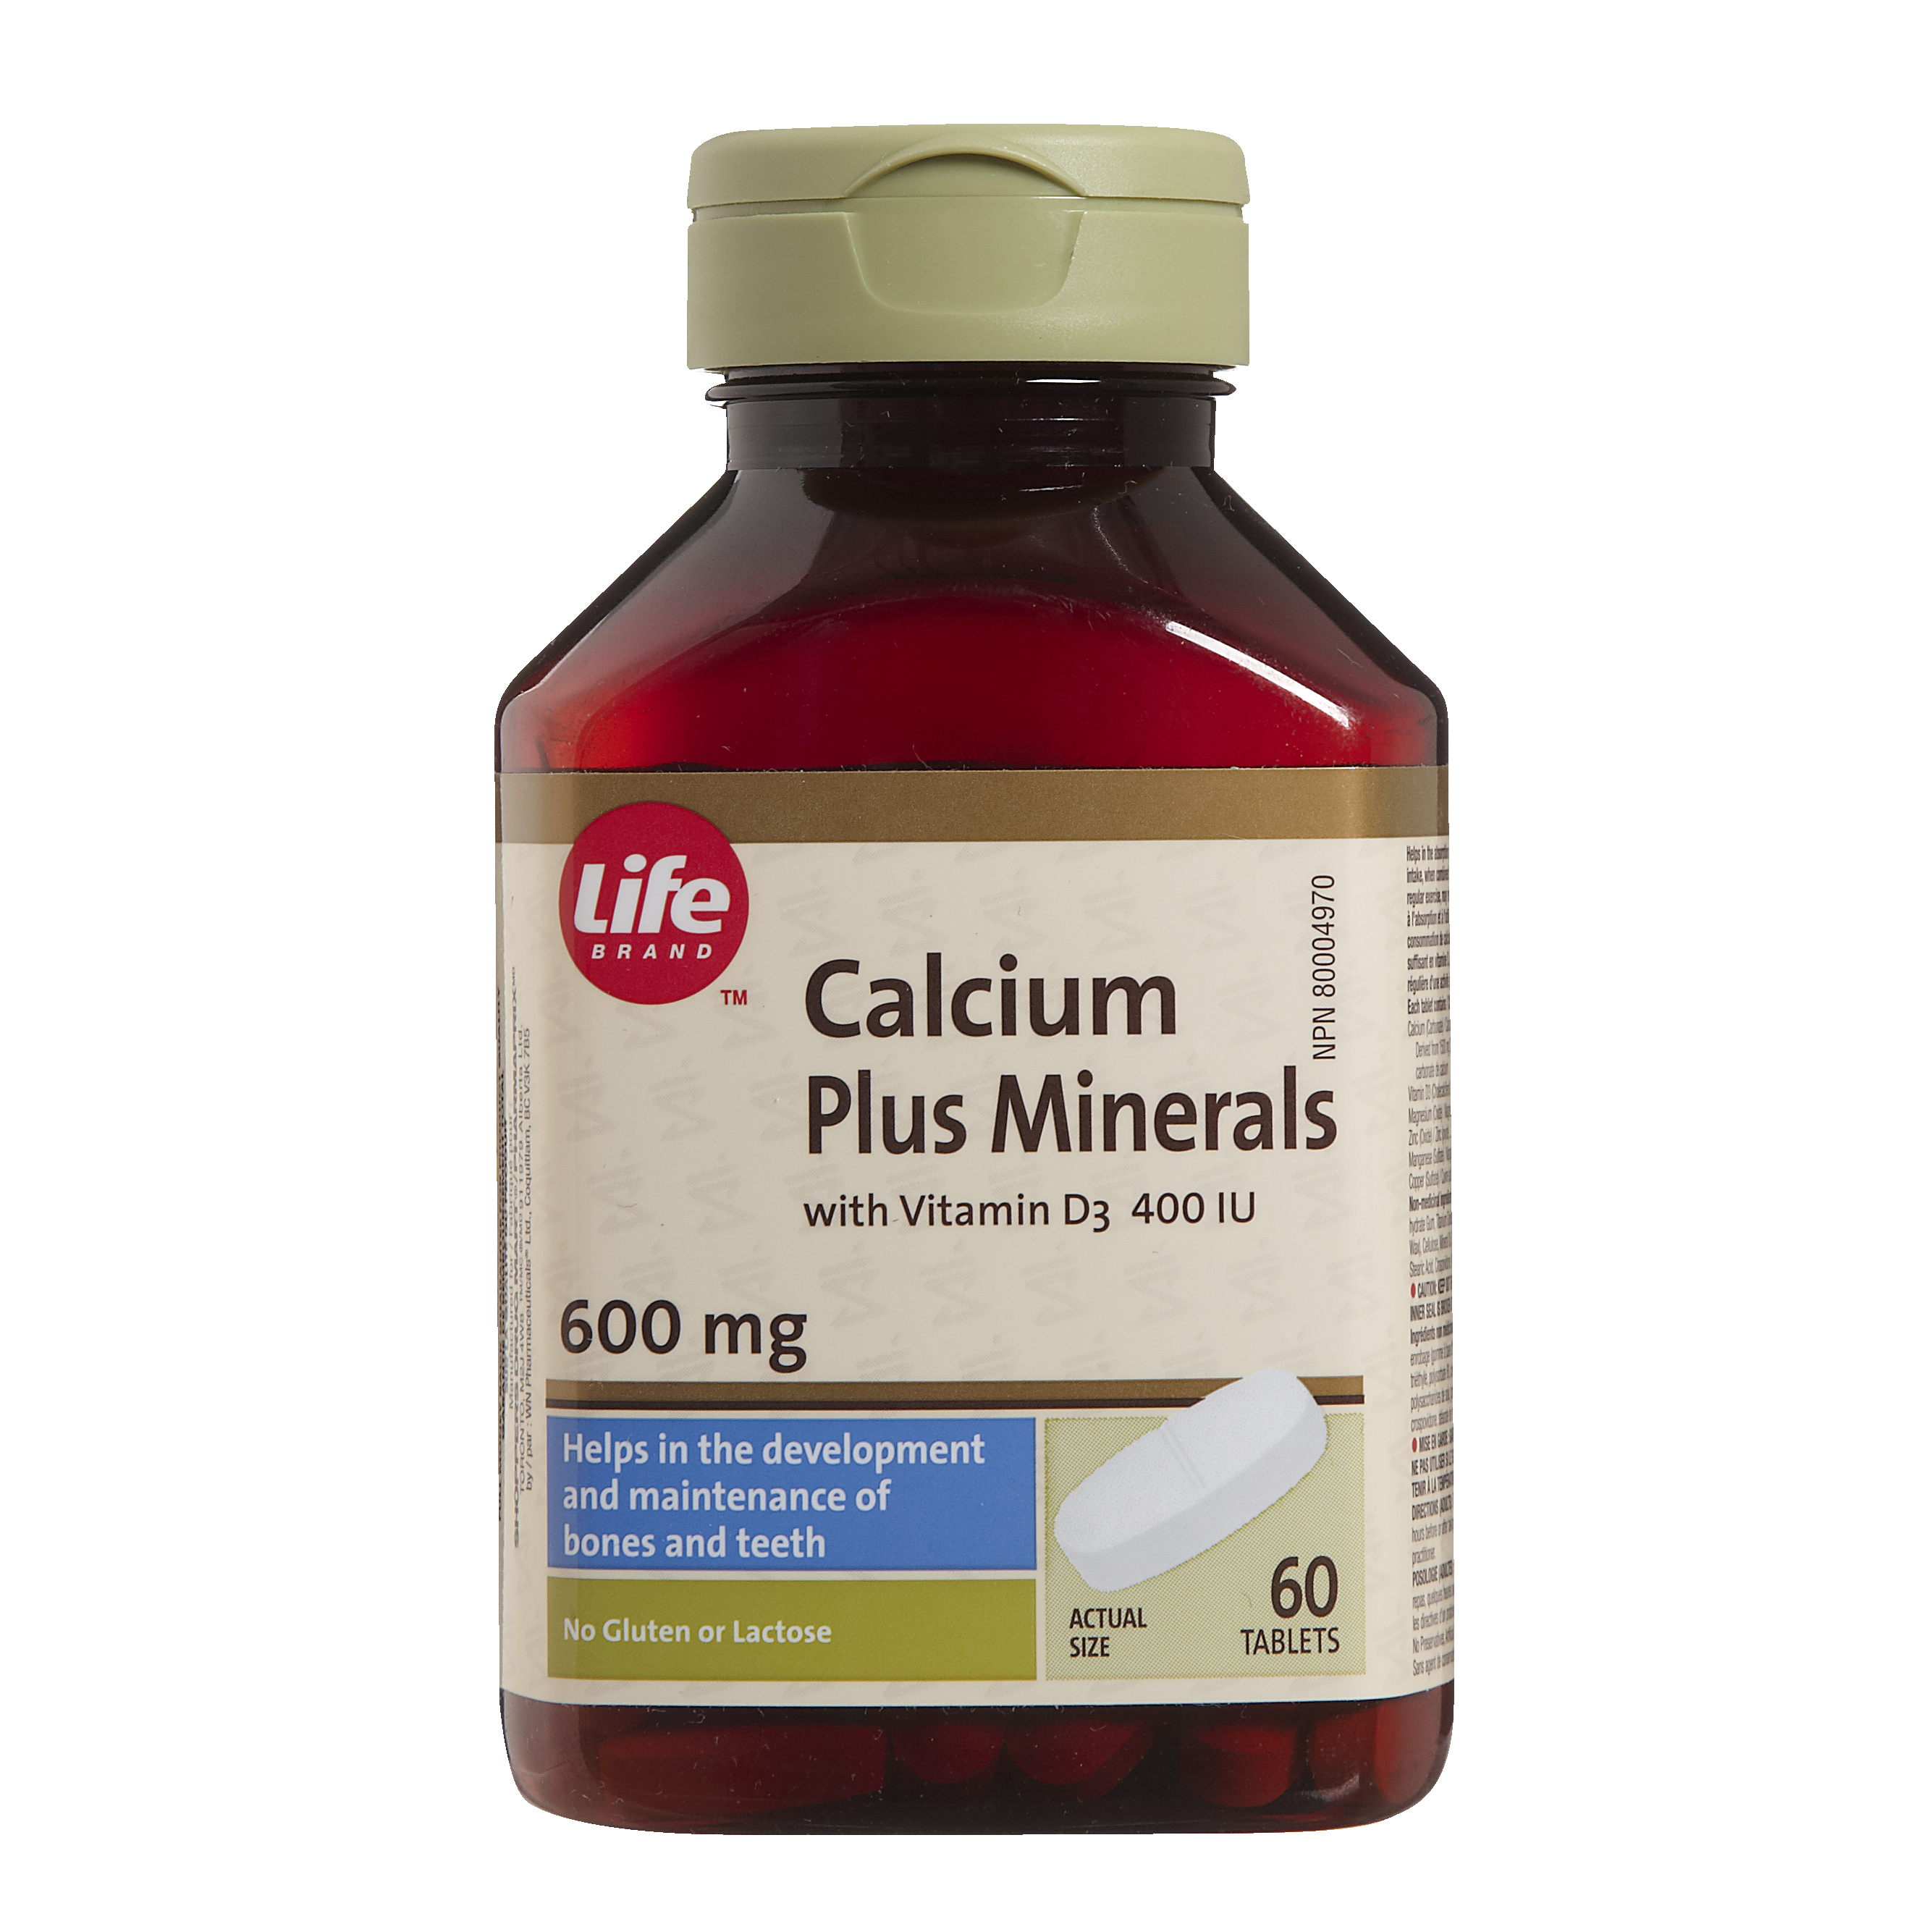 Life Brand Calcium 600 mg plus Minerals with Vitamin D3 400 IU Tablets